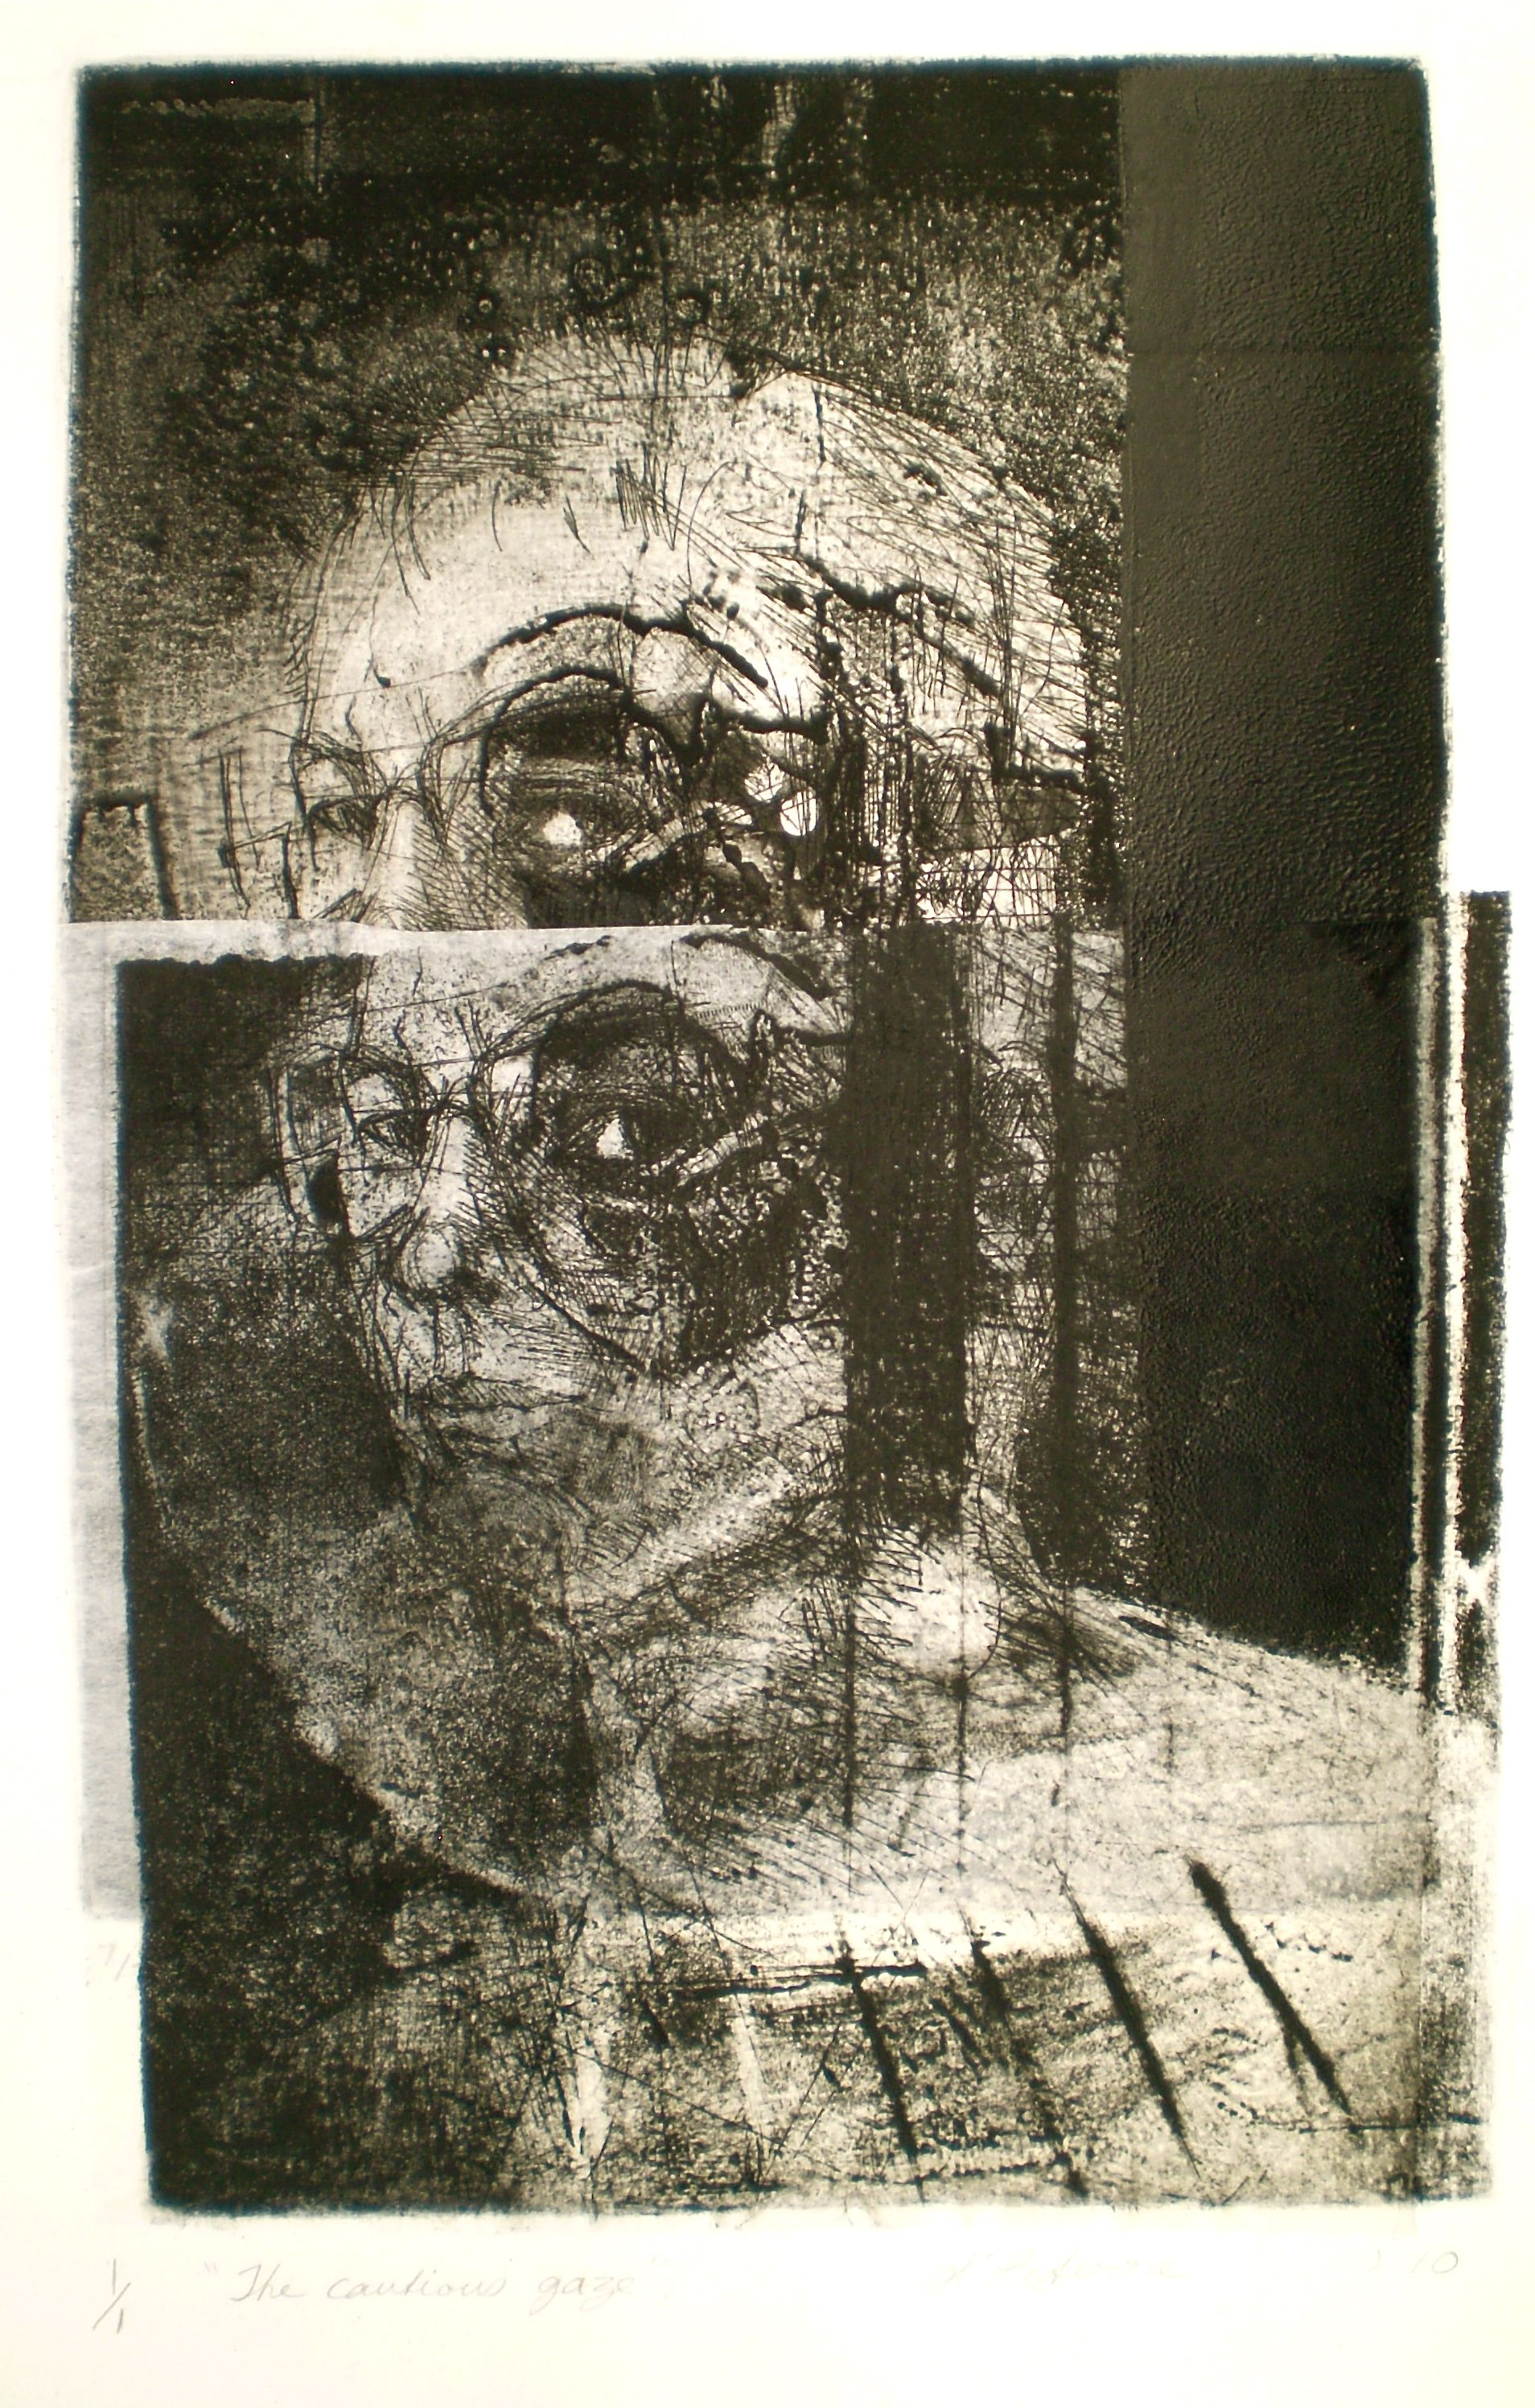 ELAINE d'ESTERRE - The Cautious Gaze, 1/1, 2010, intaglio, drypoint and chine-colle 29x19 cm print, 37x28 cm paper by Elaine d'Esterre at http://elainedesterreart.com and http://www.facebook.com/elainedesterreart/ and http://instagram.com/desterreart/